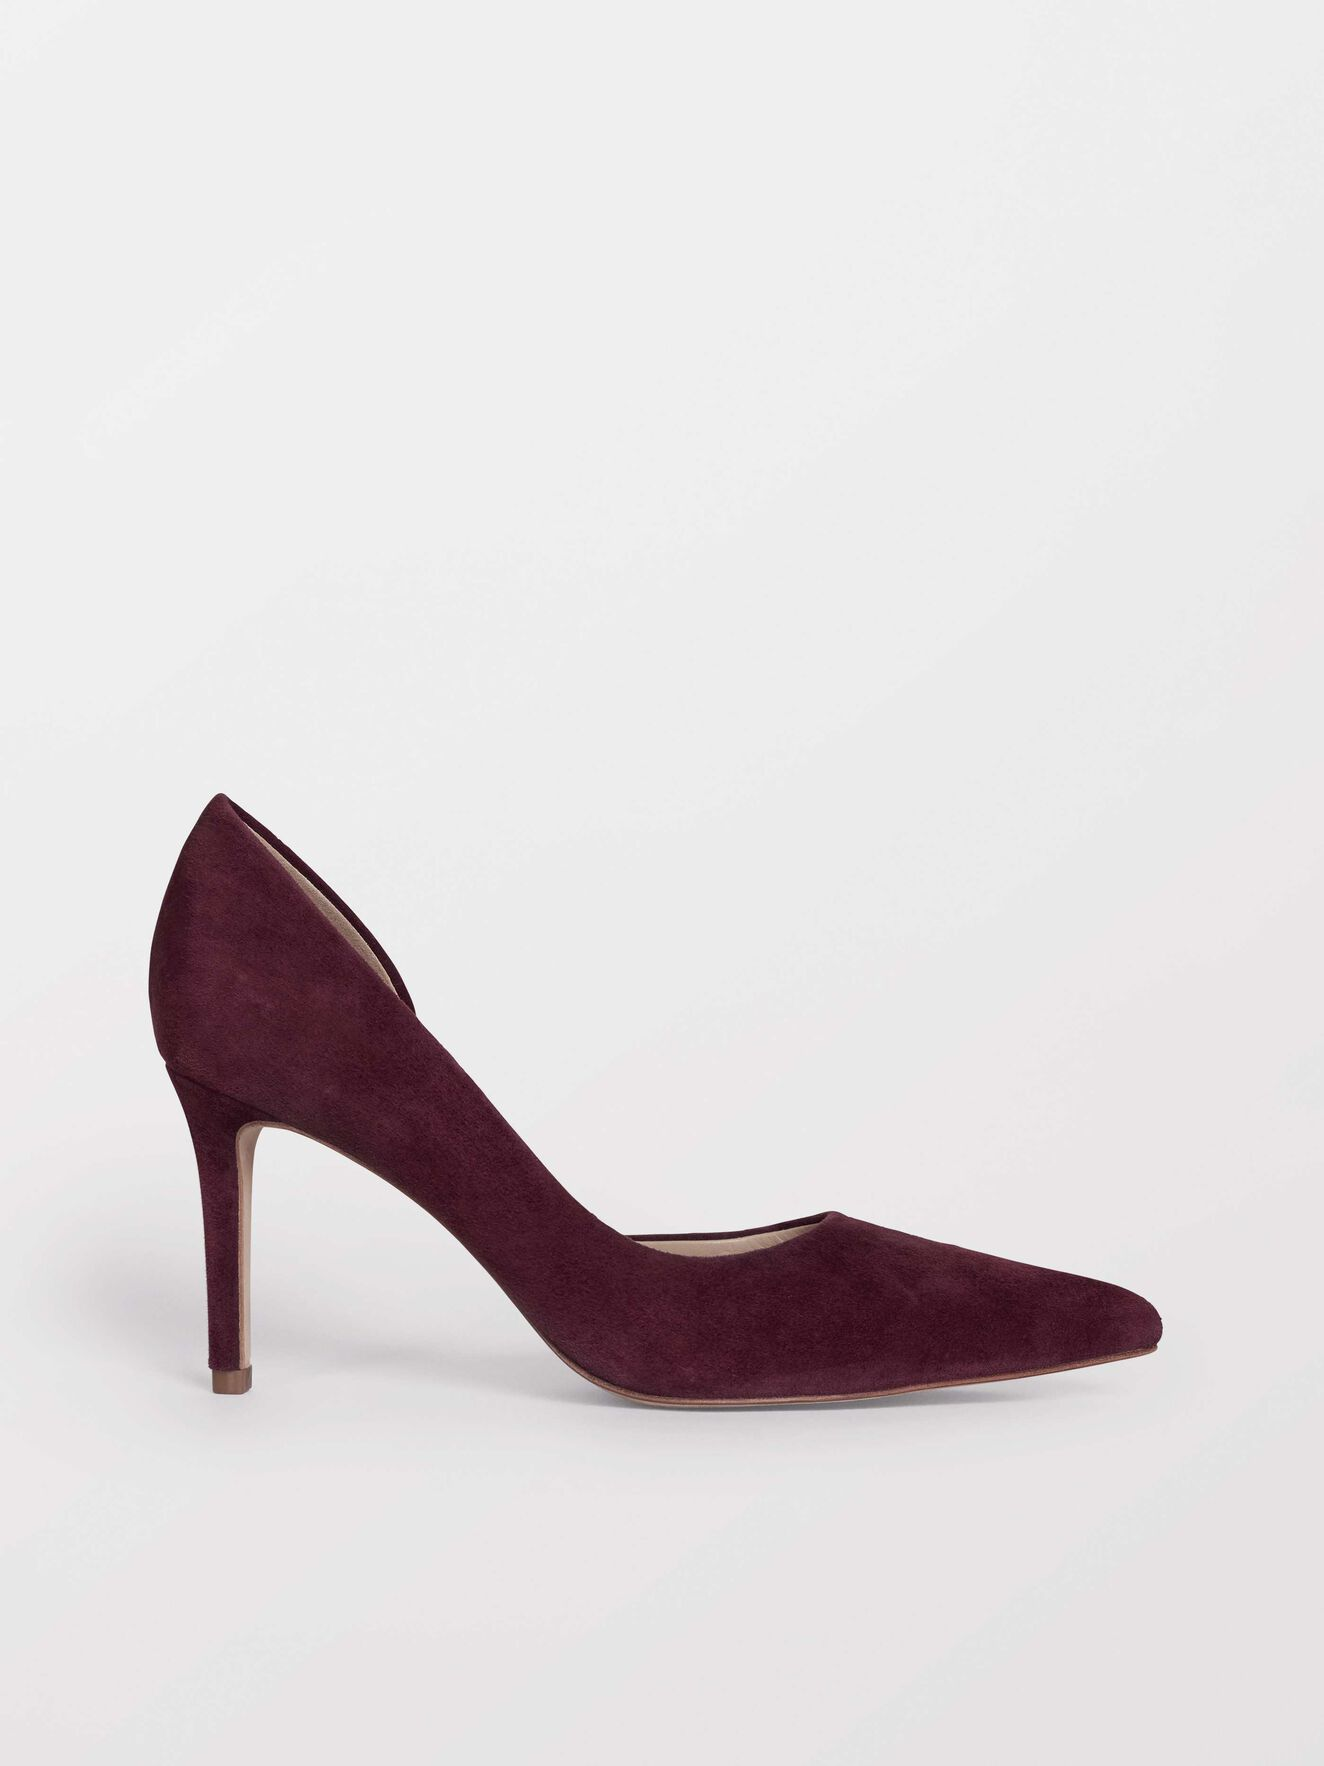 Xeroli Pumps in Baked Red from Tiger of Sweden